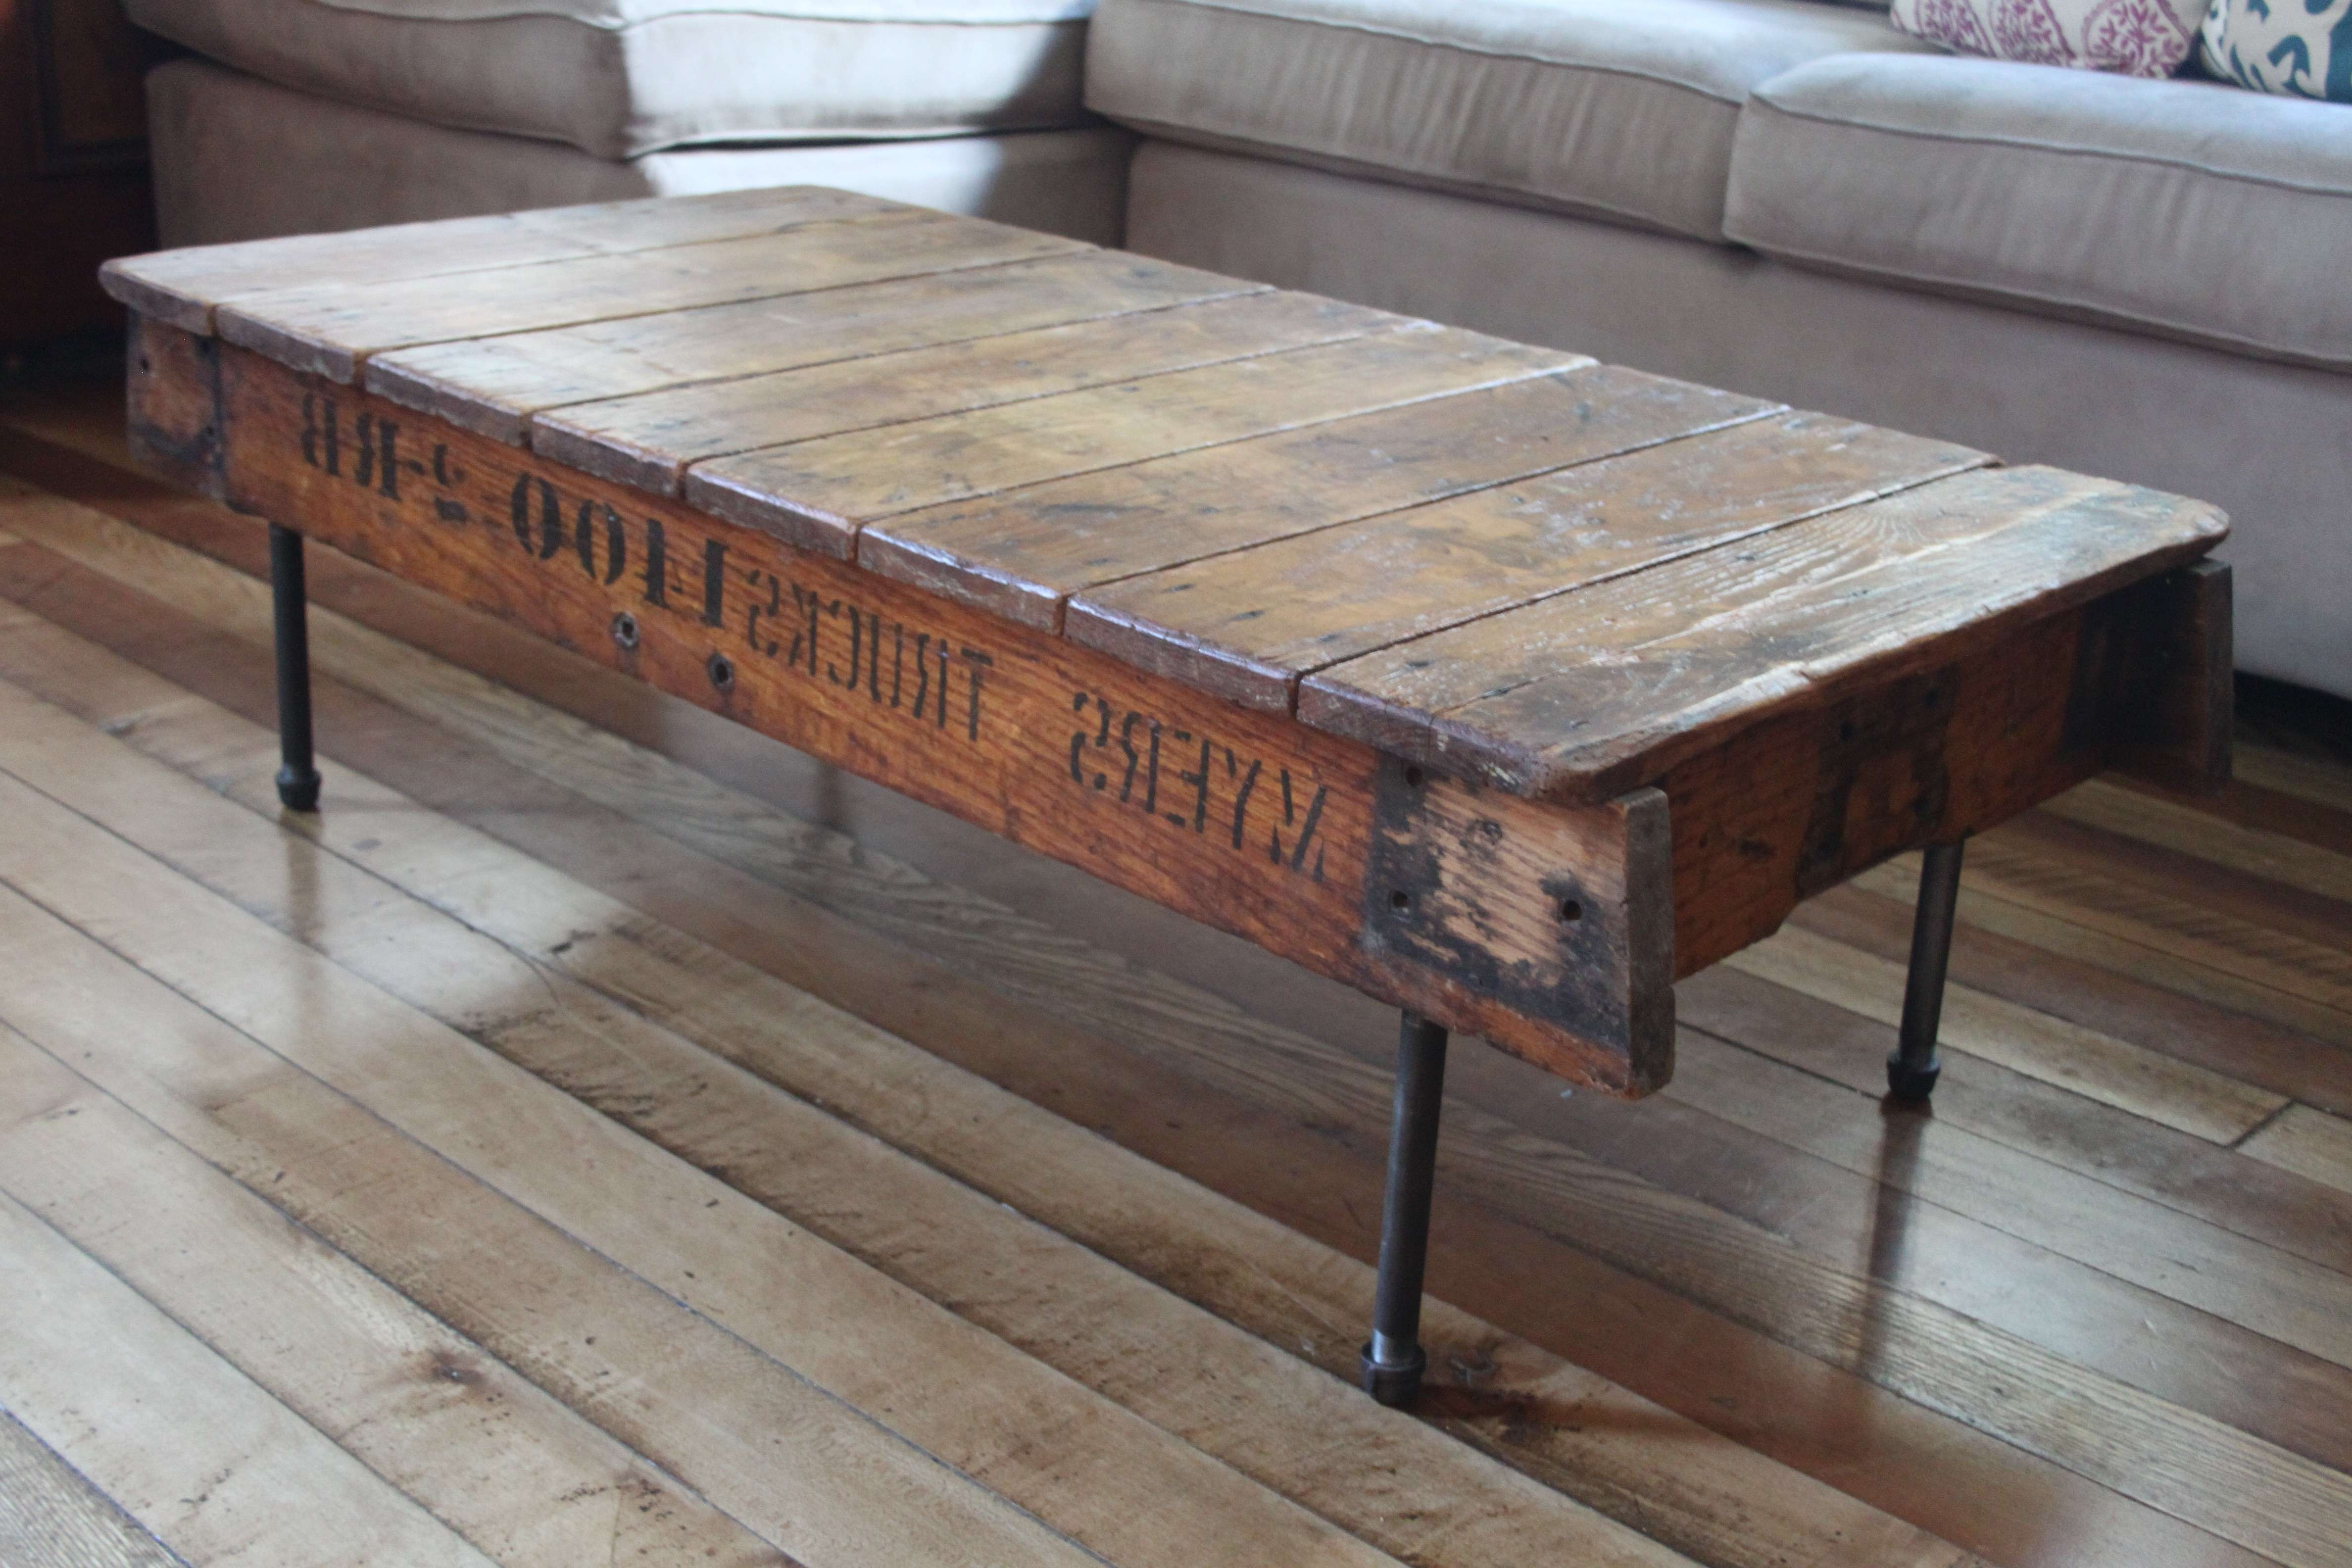 Coffee Table : Magnificent Side Table With Storage Narrow Coffee Intended For Current Narrow Coffee Tables (View 6 of 20)